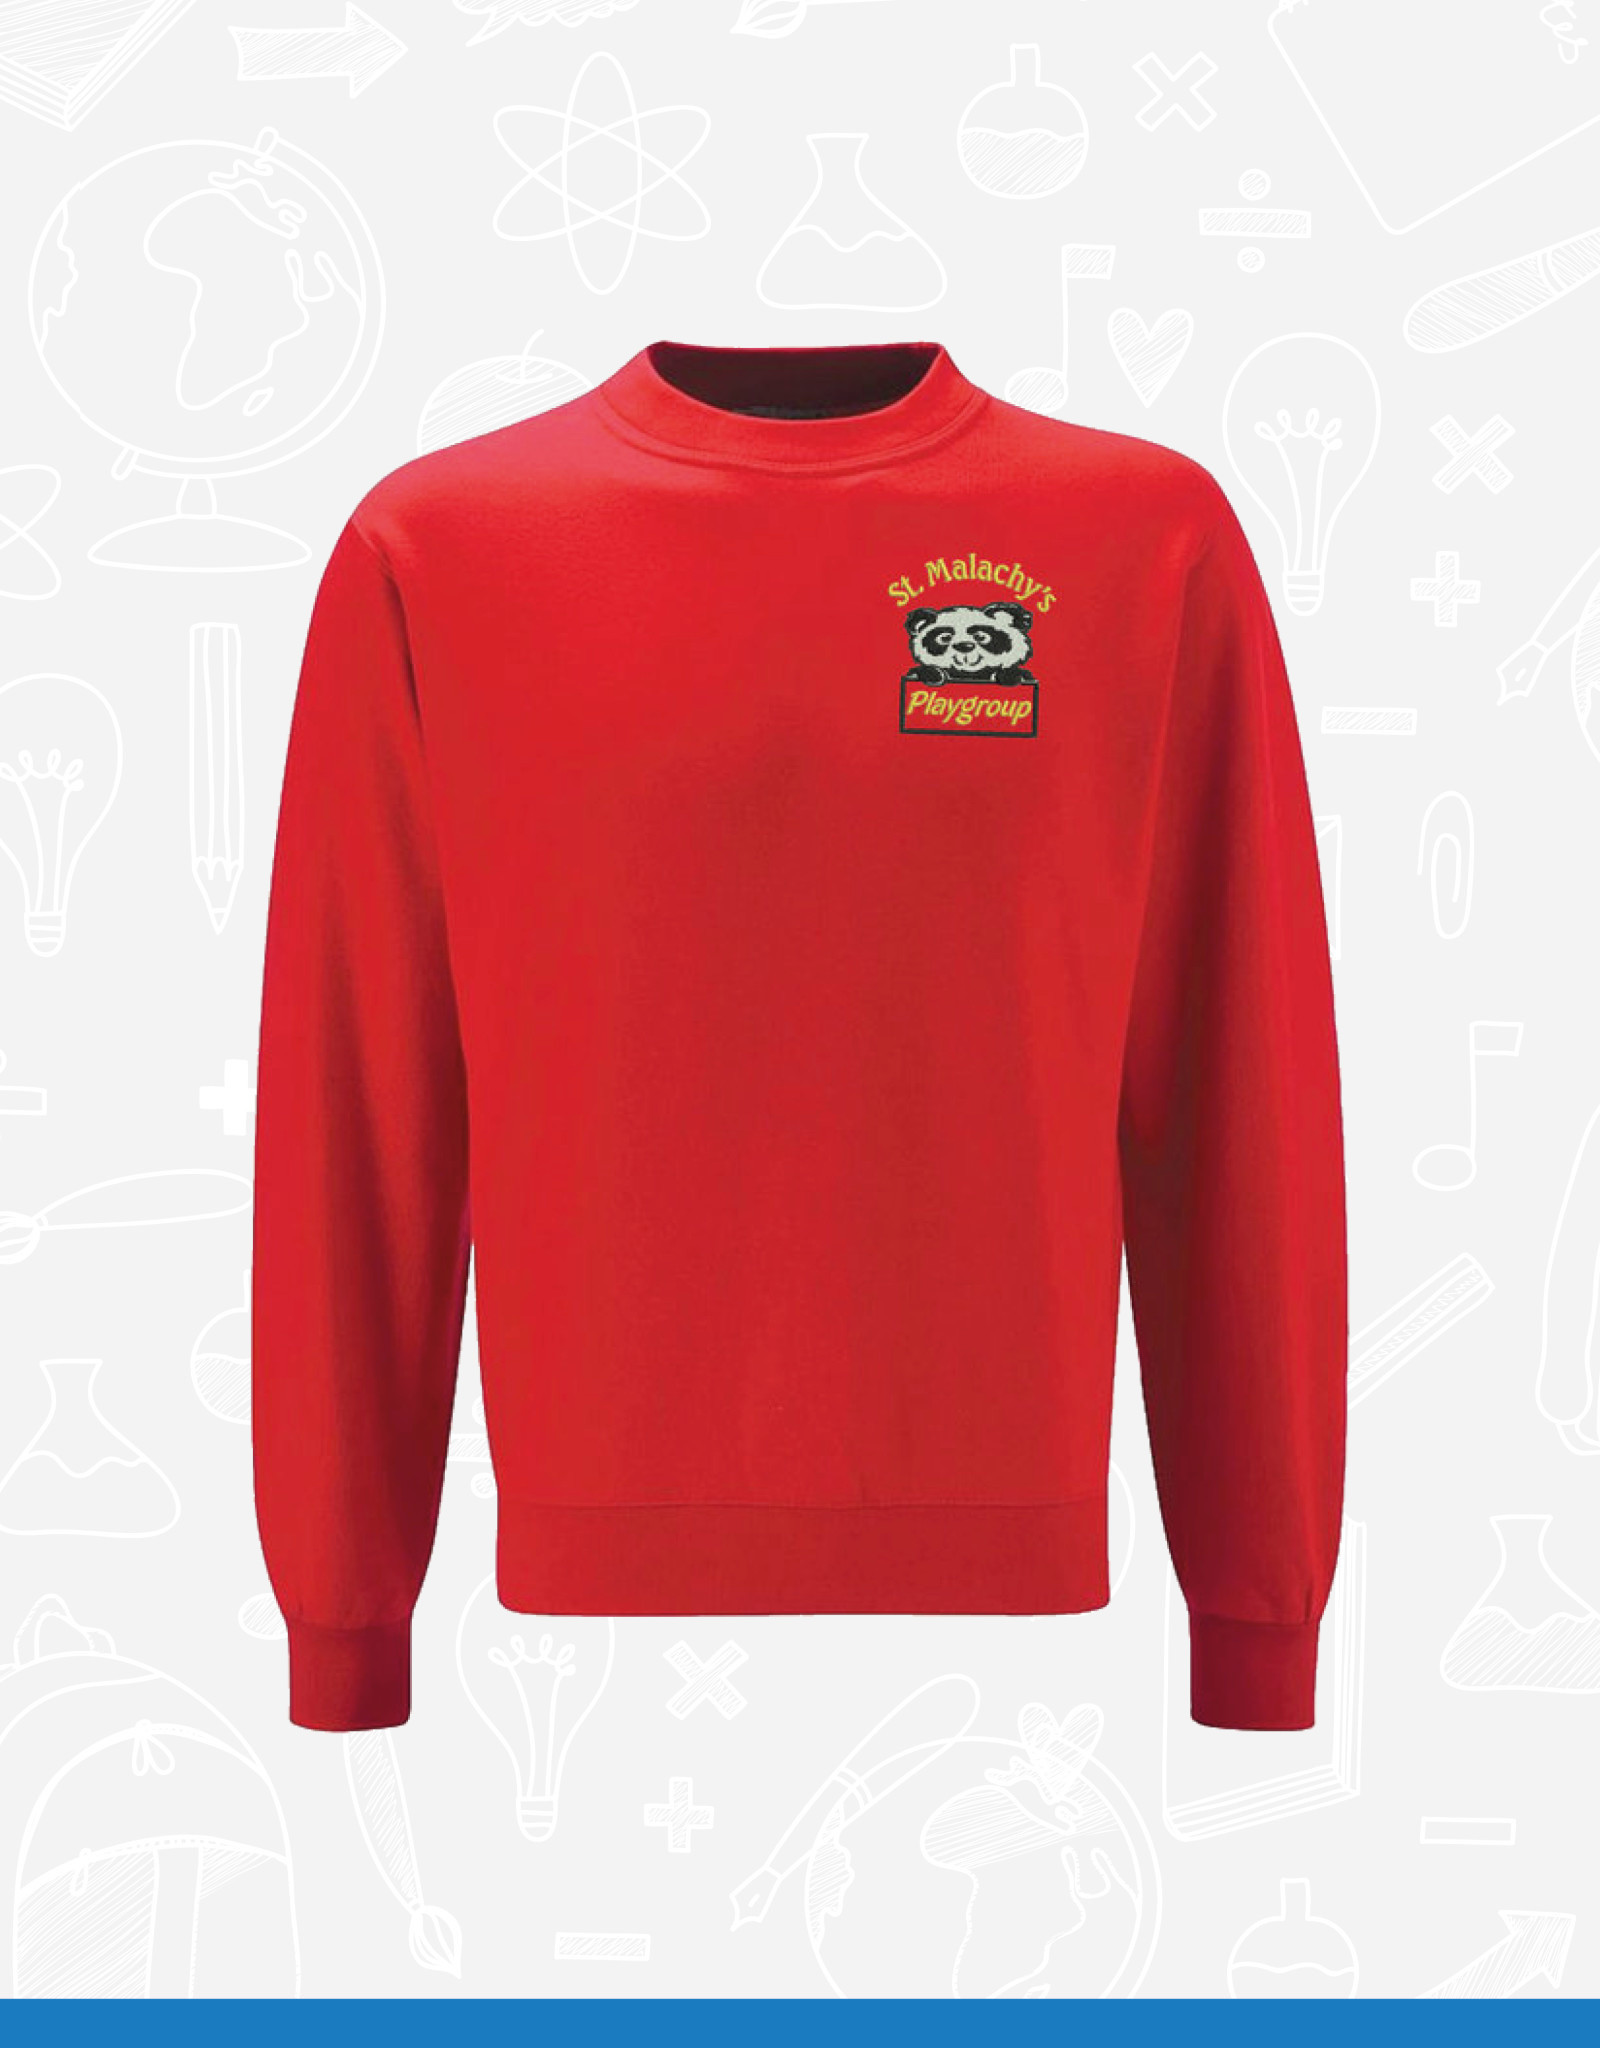 DT St Malachy's Playgroup Sweatshirt (DT)